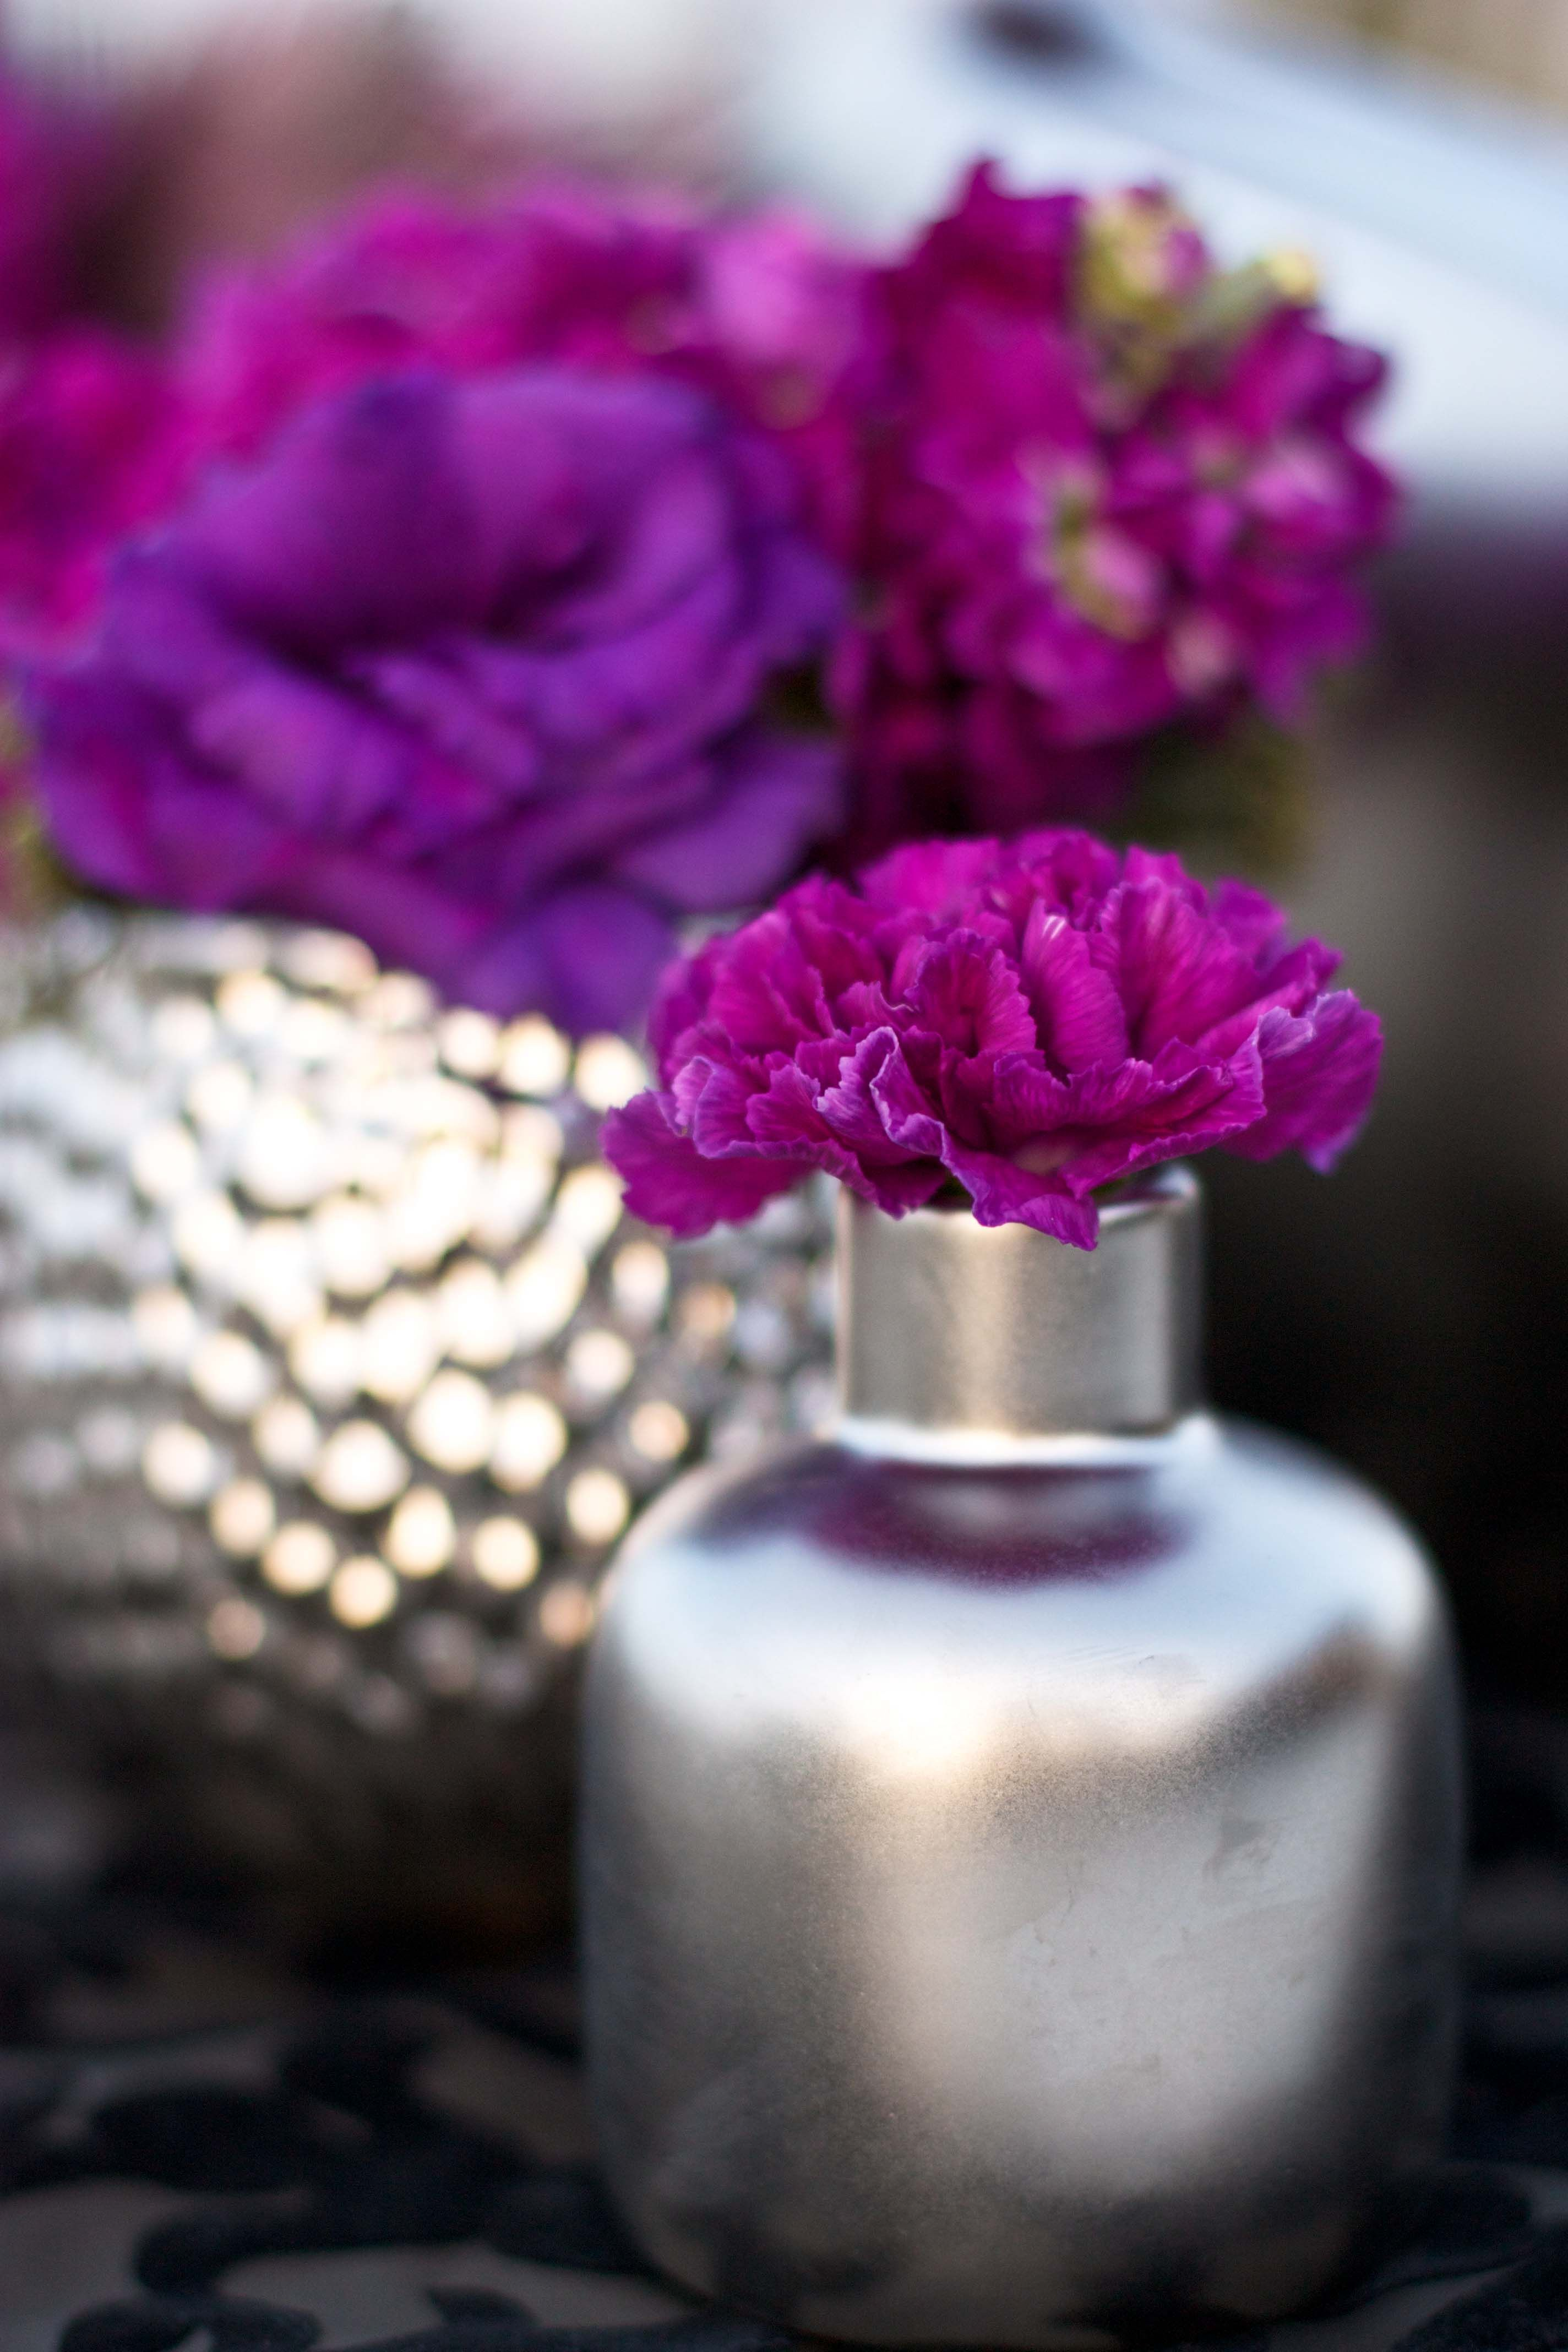 Having a grey wedding? Use silver to make your centerpieces more exciting! #graywedding #weddingdecor